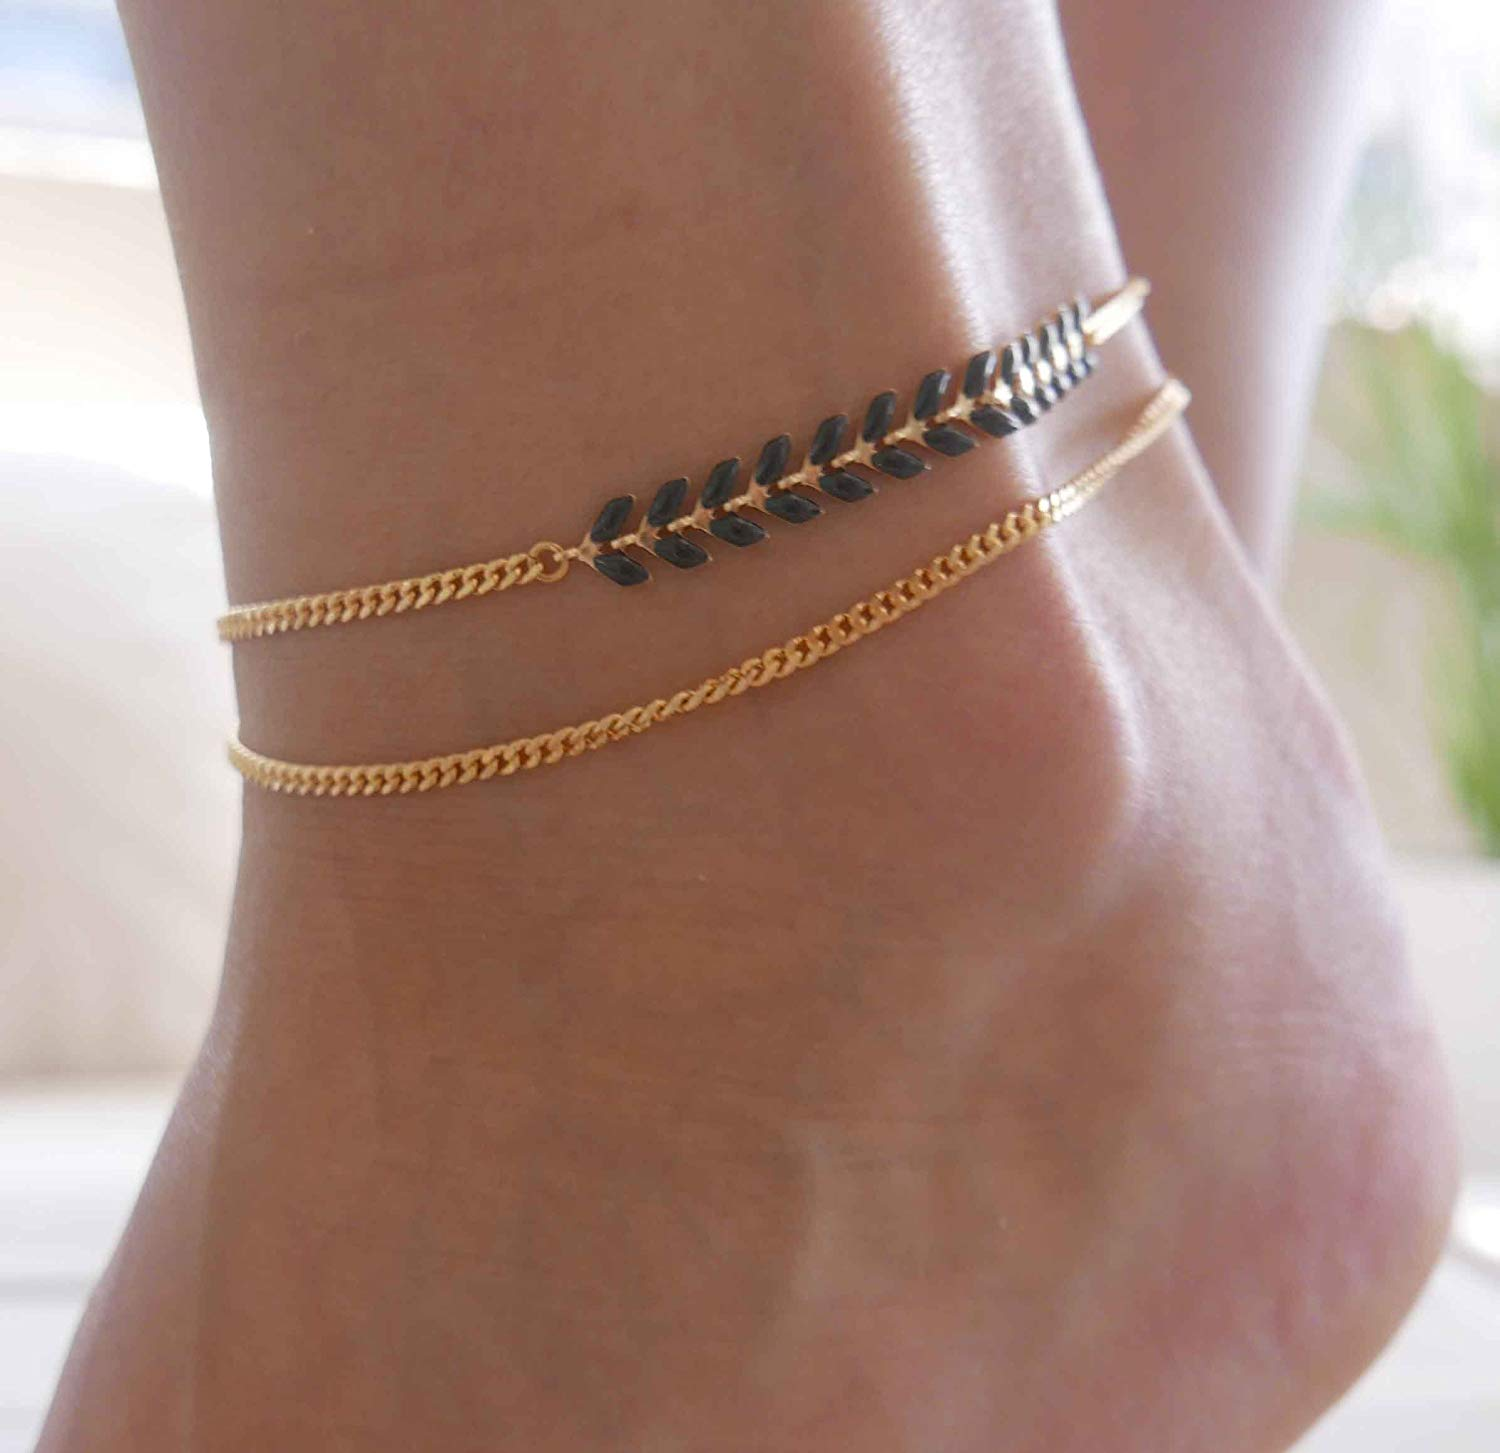 Handmade Gold Anklet For Women Set With Black Arrow Chain By Galis Jewelry - Gold Ankle Bracelet For Women - Arrow Anklet - Arrow Ankle Bracelet